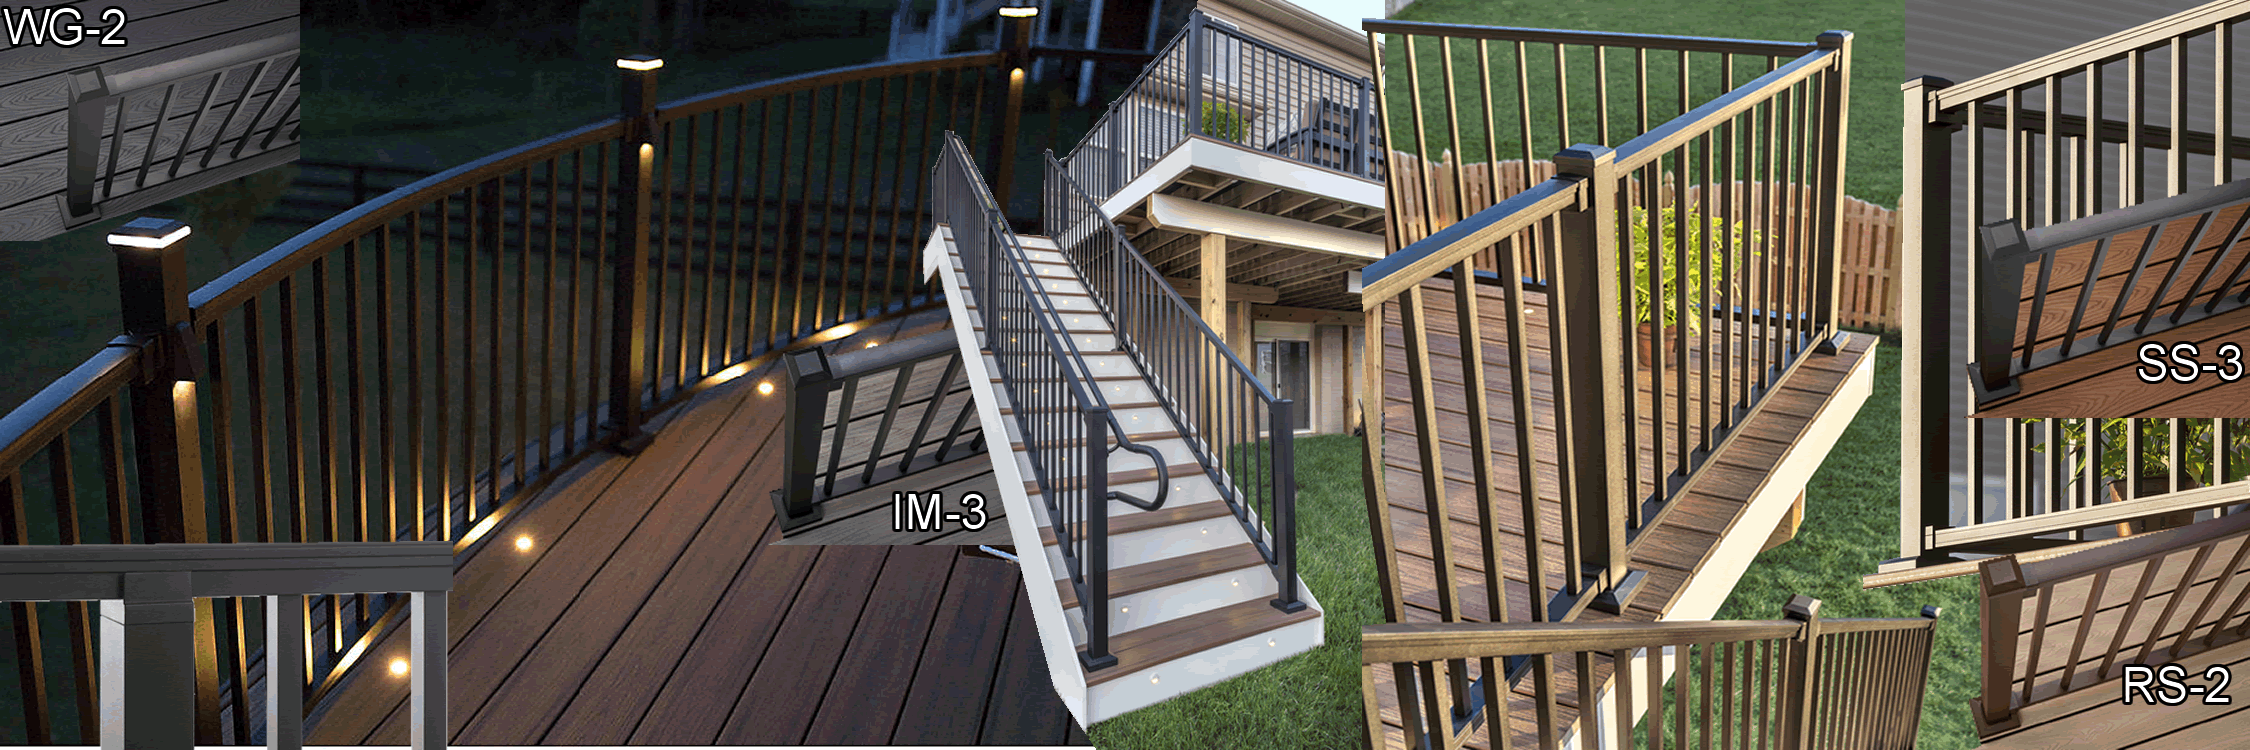 various images of signature railing and duos